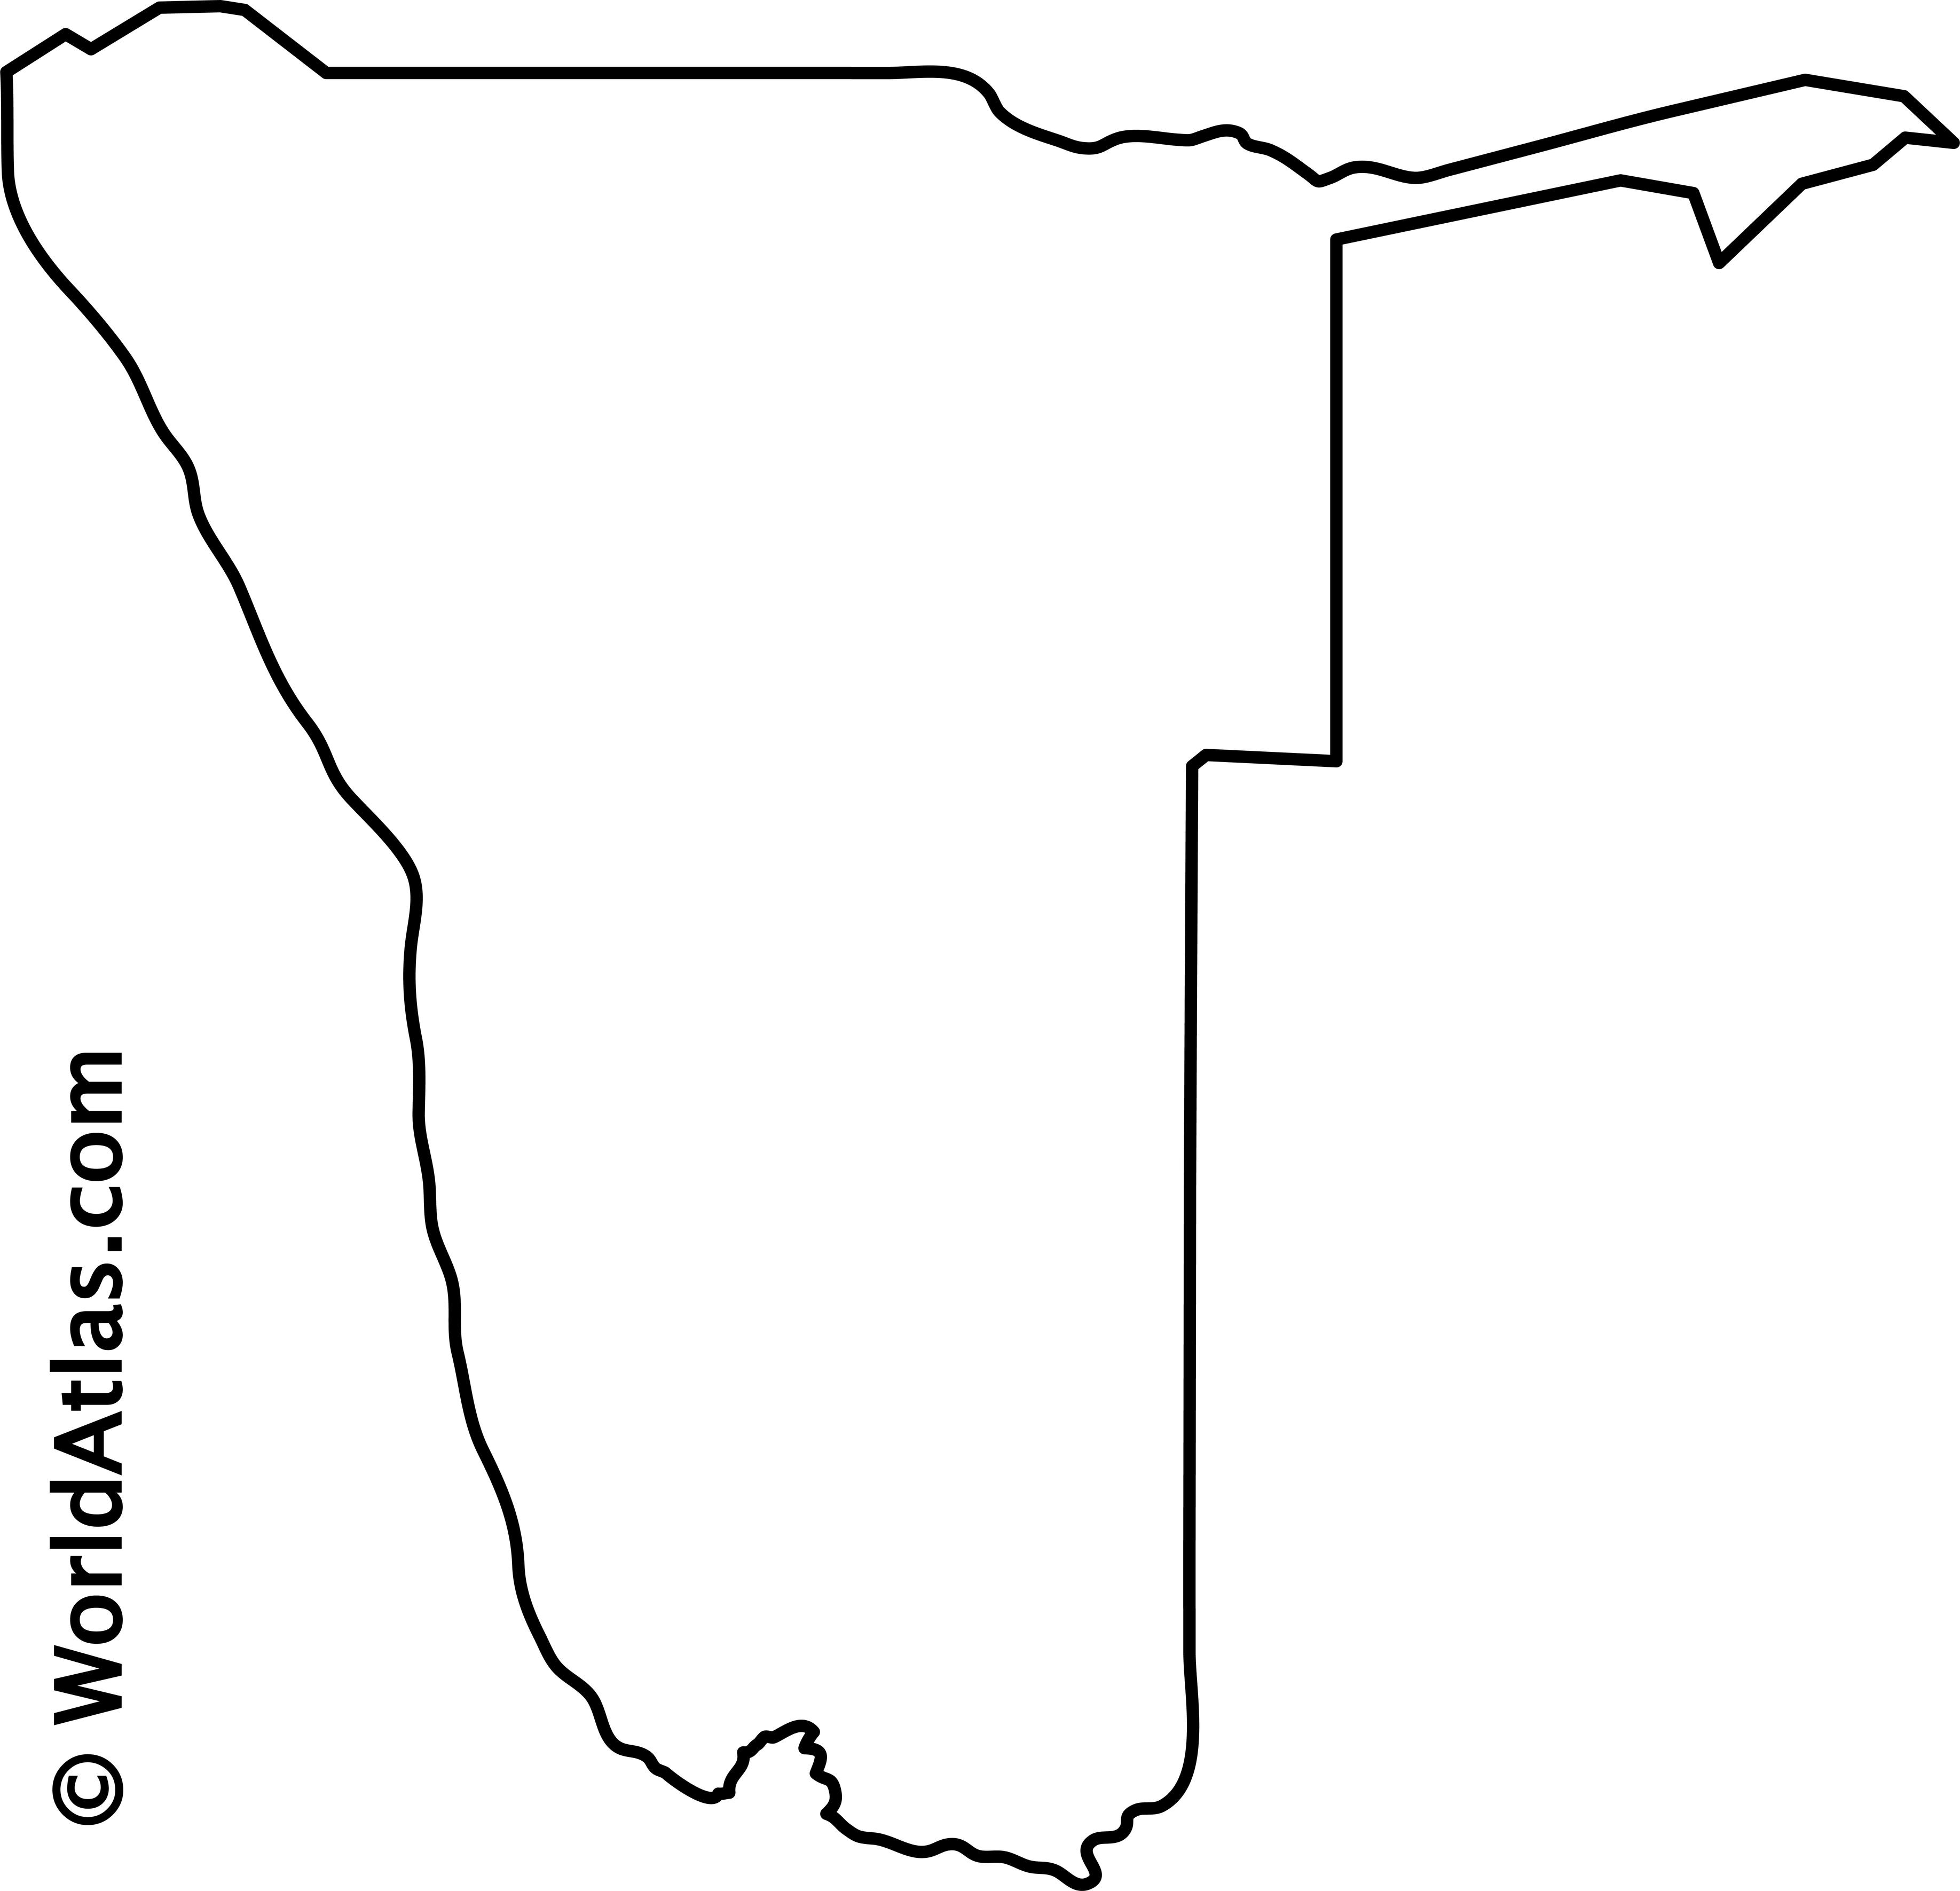 Blank Outline Map of Namibia